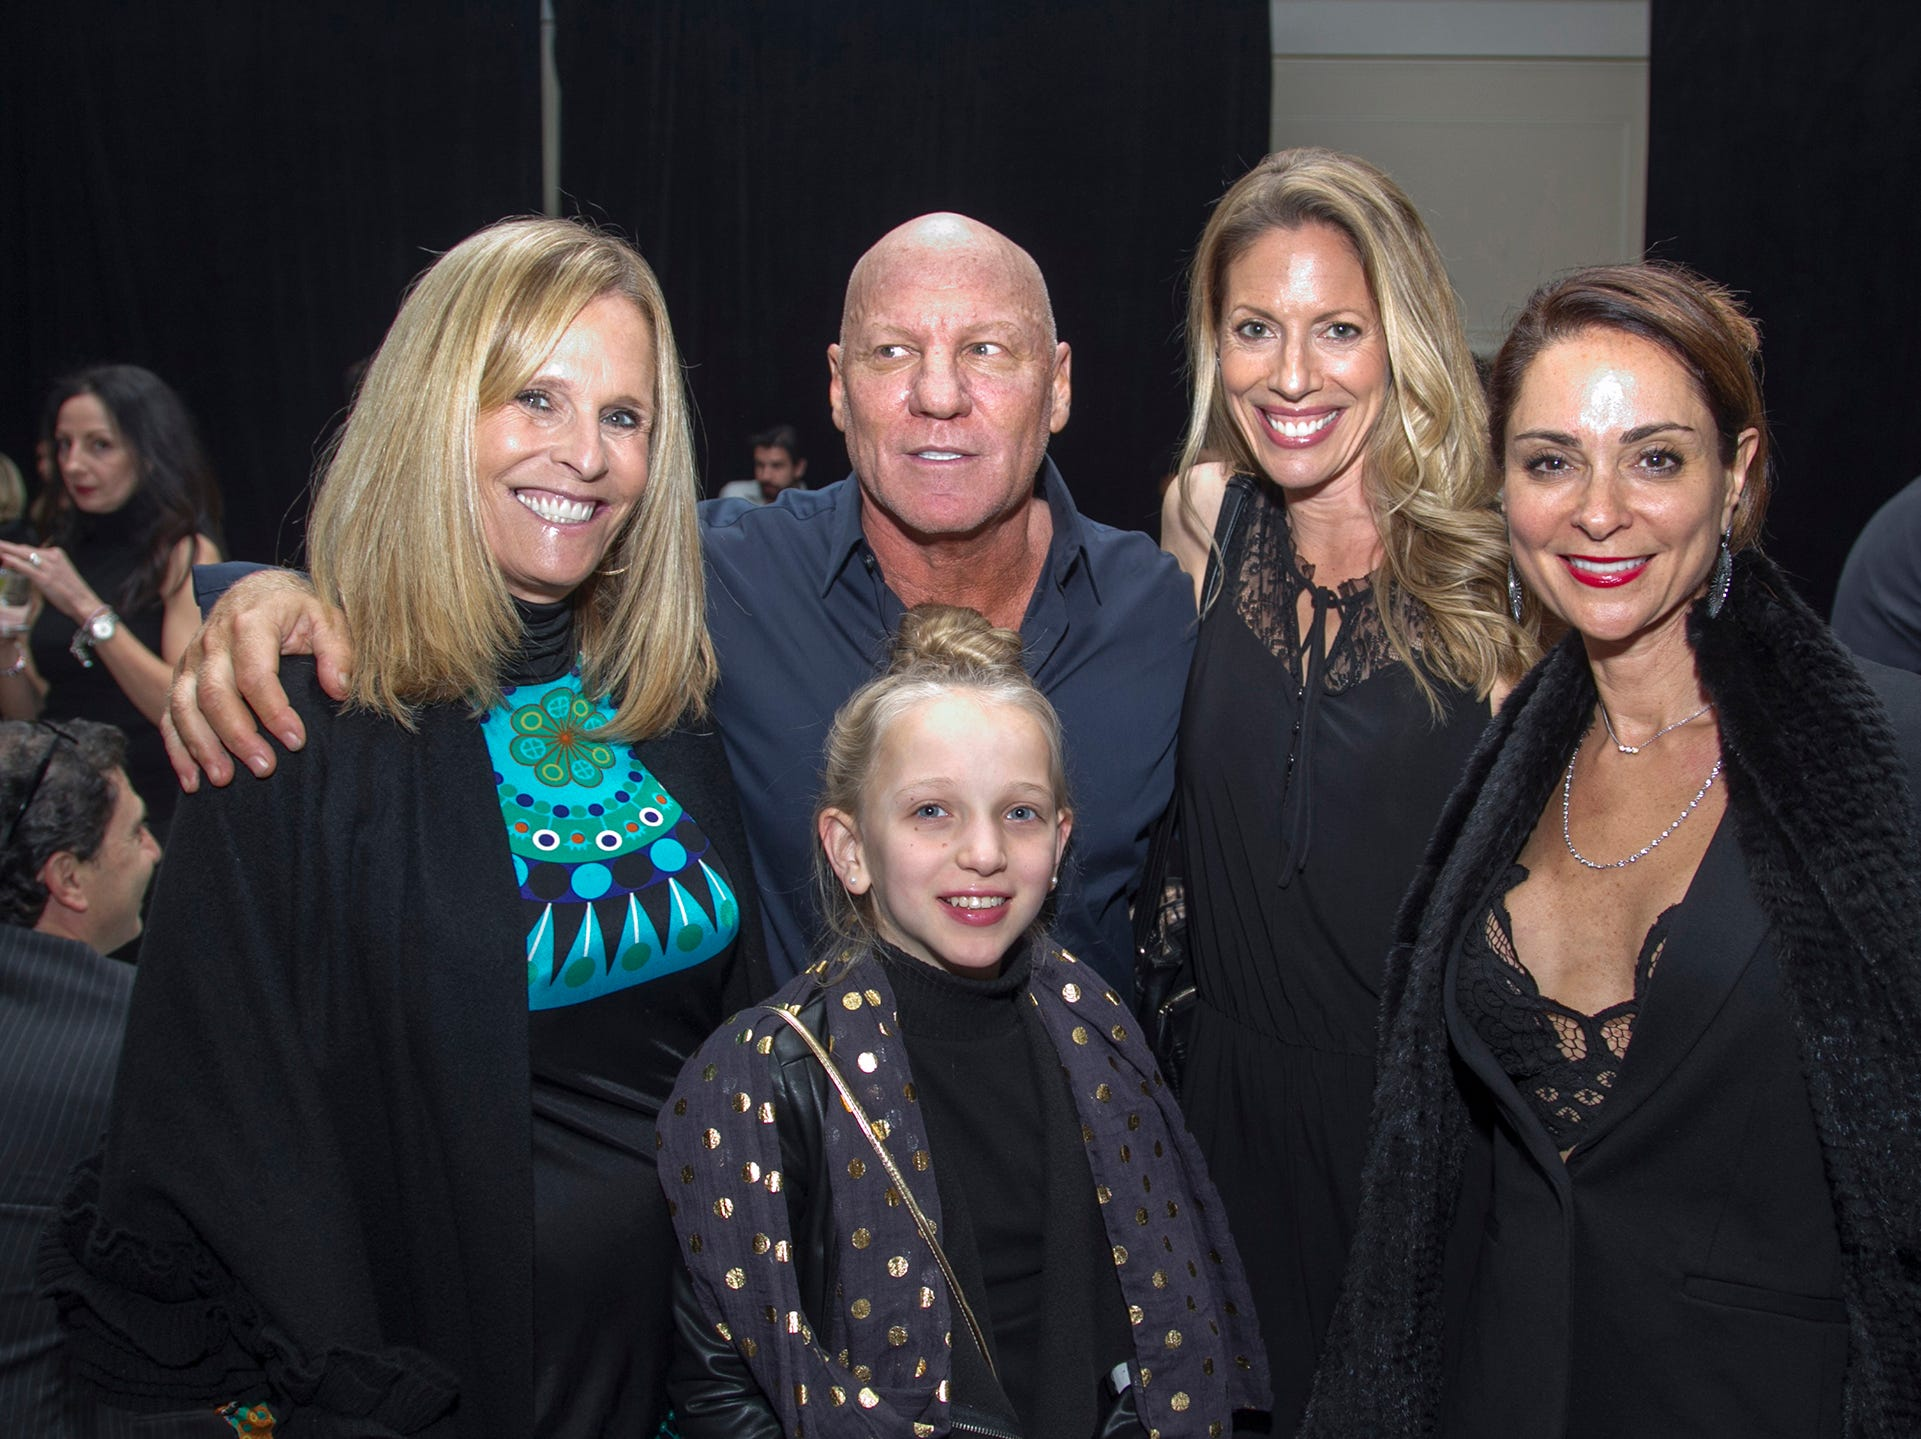 Carroll, Steve Madden, Gina, Jenn, Goldie. Kula for Karma's 11th Anniversary gala at Pearl River Hilton. 11/05/2018